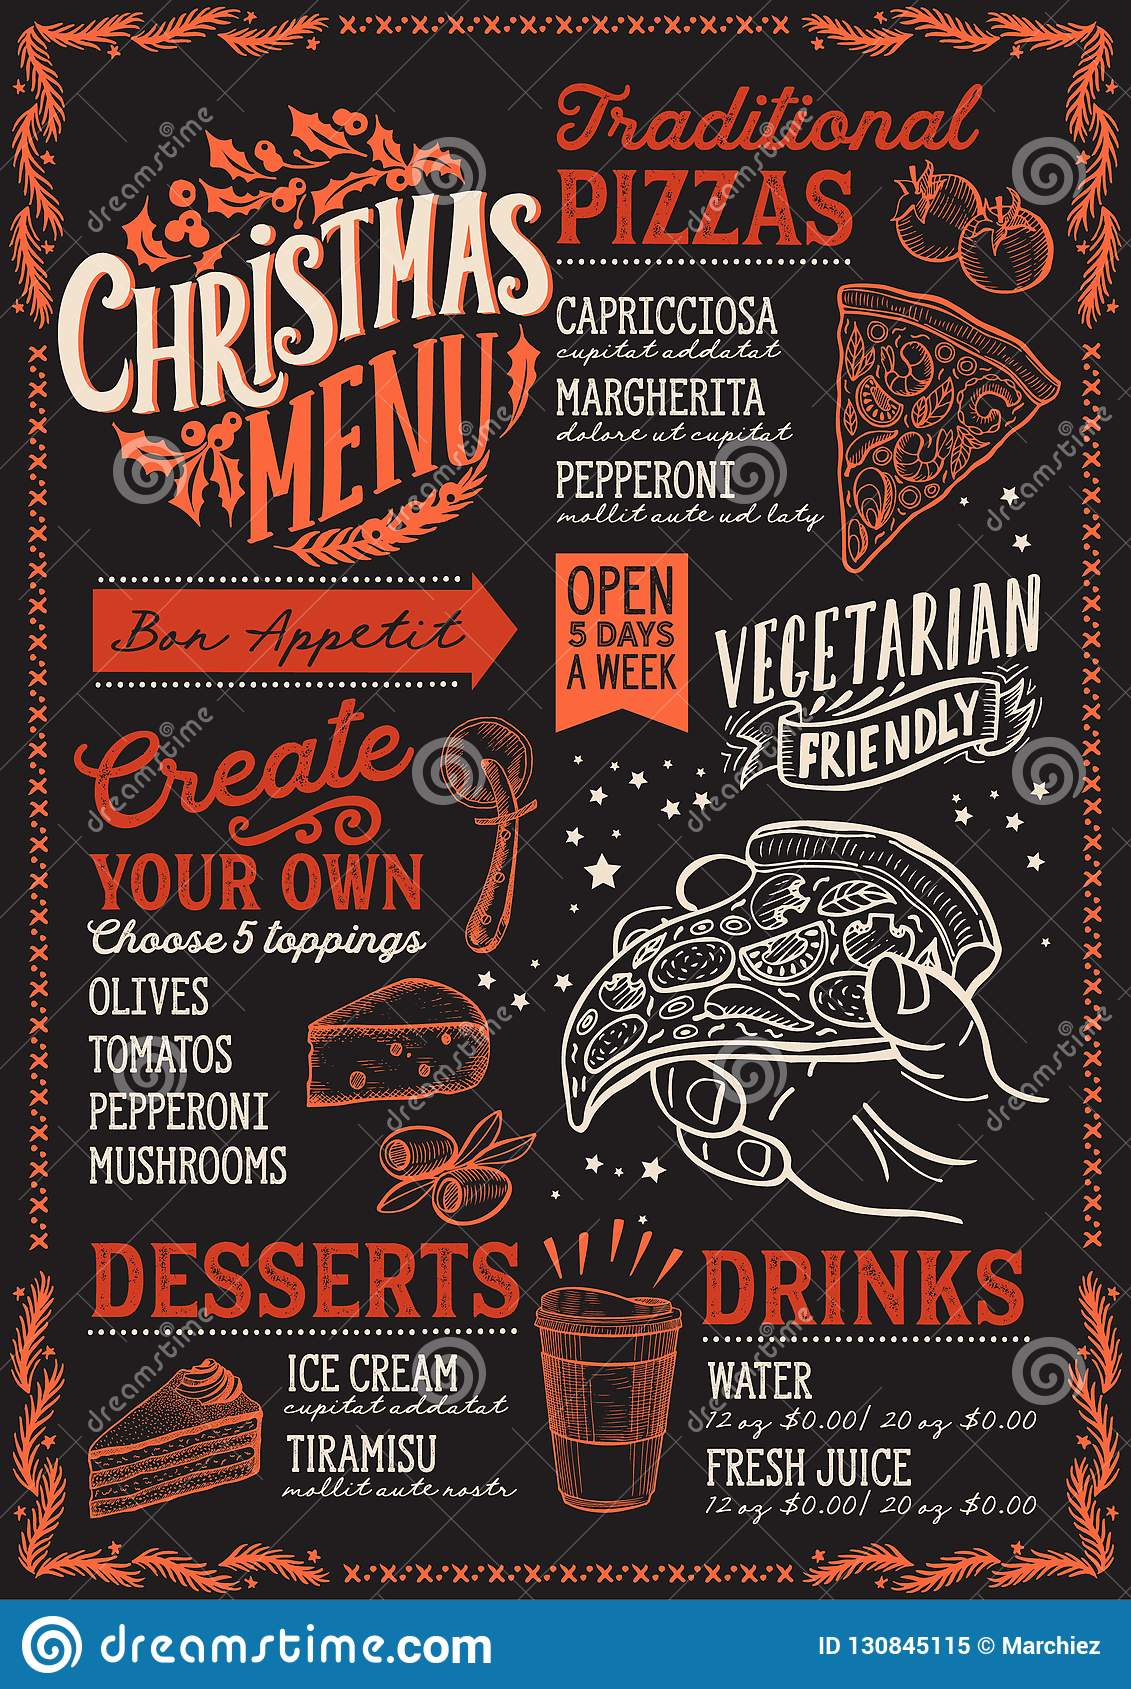 Pizza Places Open On Christmas.Christmas Menu Template For Pizza Restaurant On Blackboard